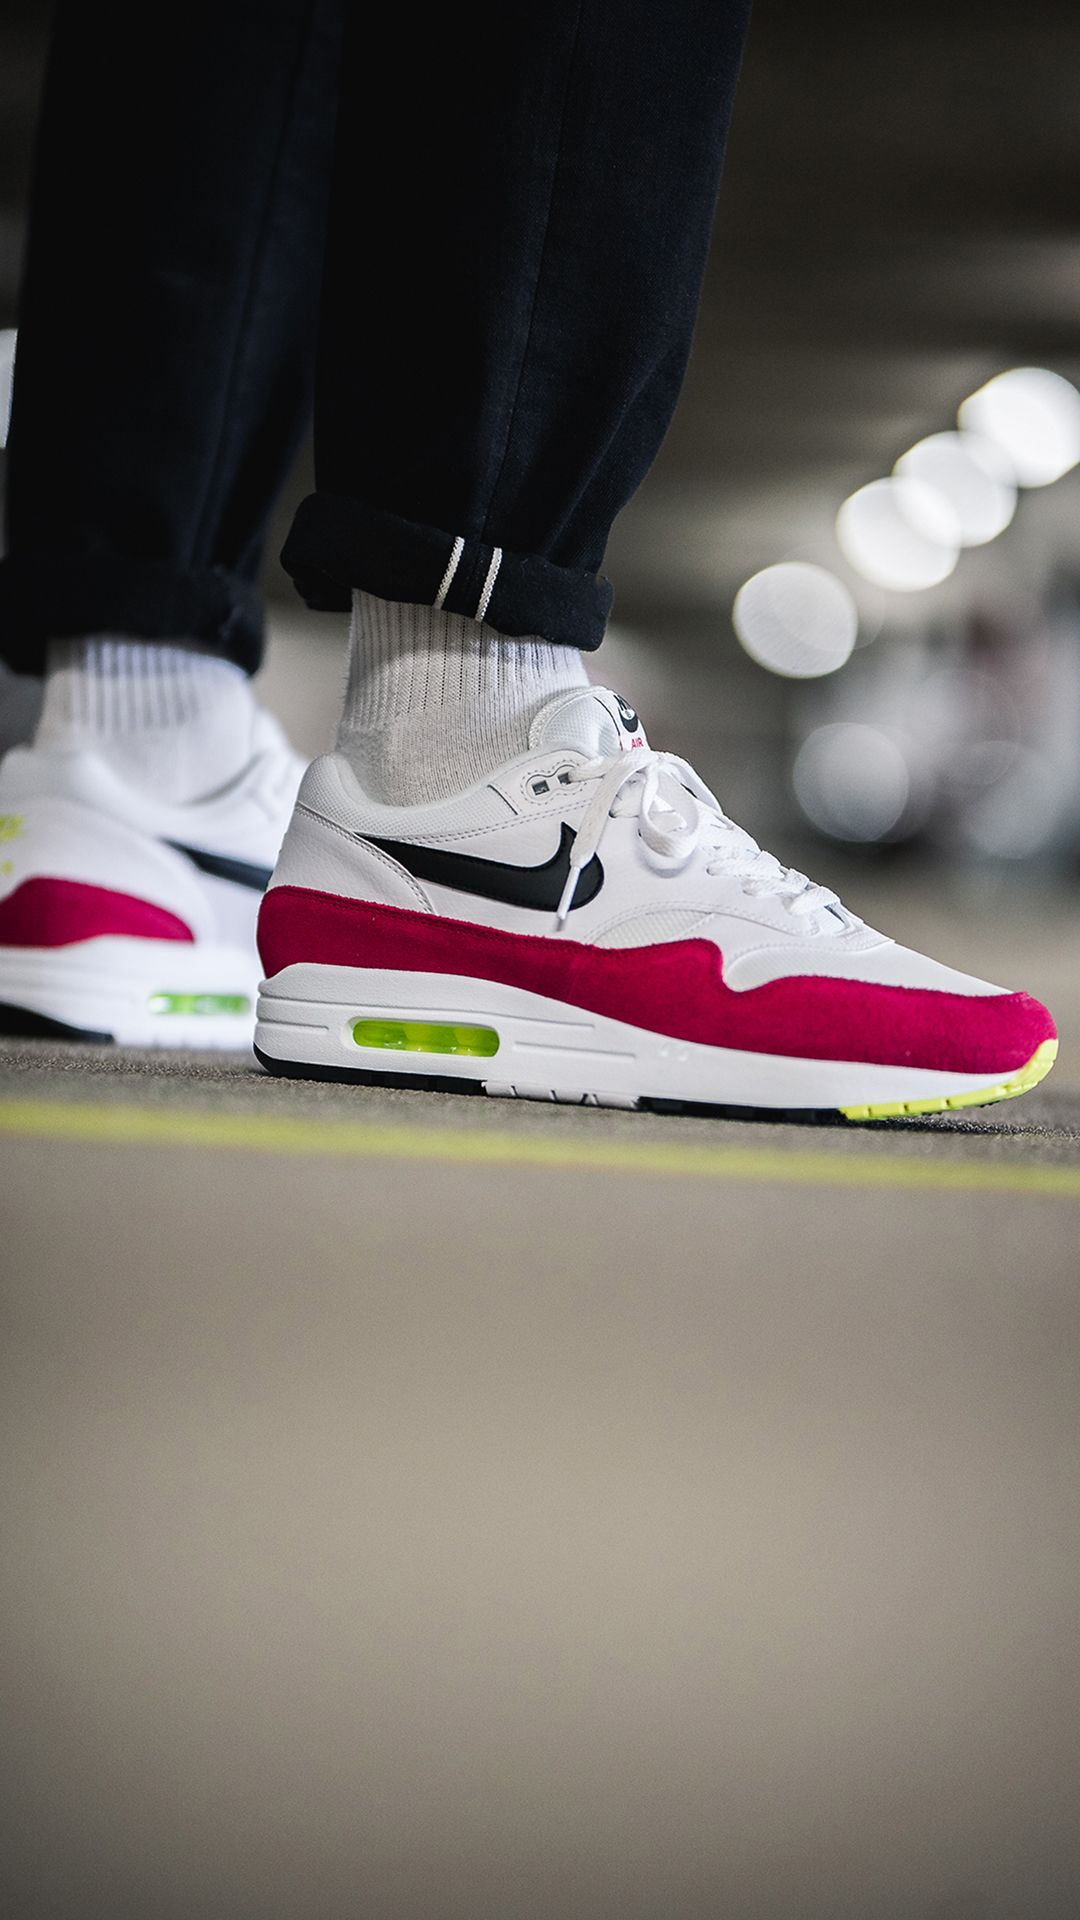 bfa1ac31e7 The Nike Air Max 1 was the first sneaker with the legendary Nike Air  technology in Nike's assortment that saw the light of day. Throughout the  years the Air ...